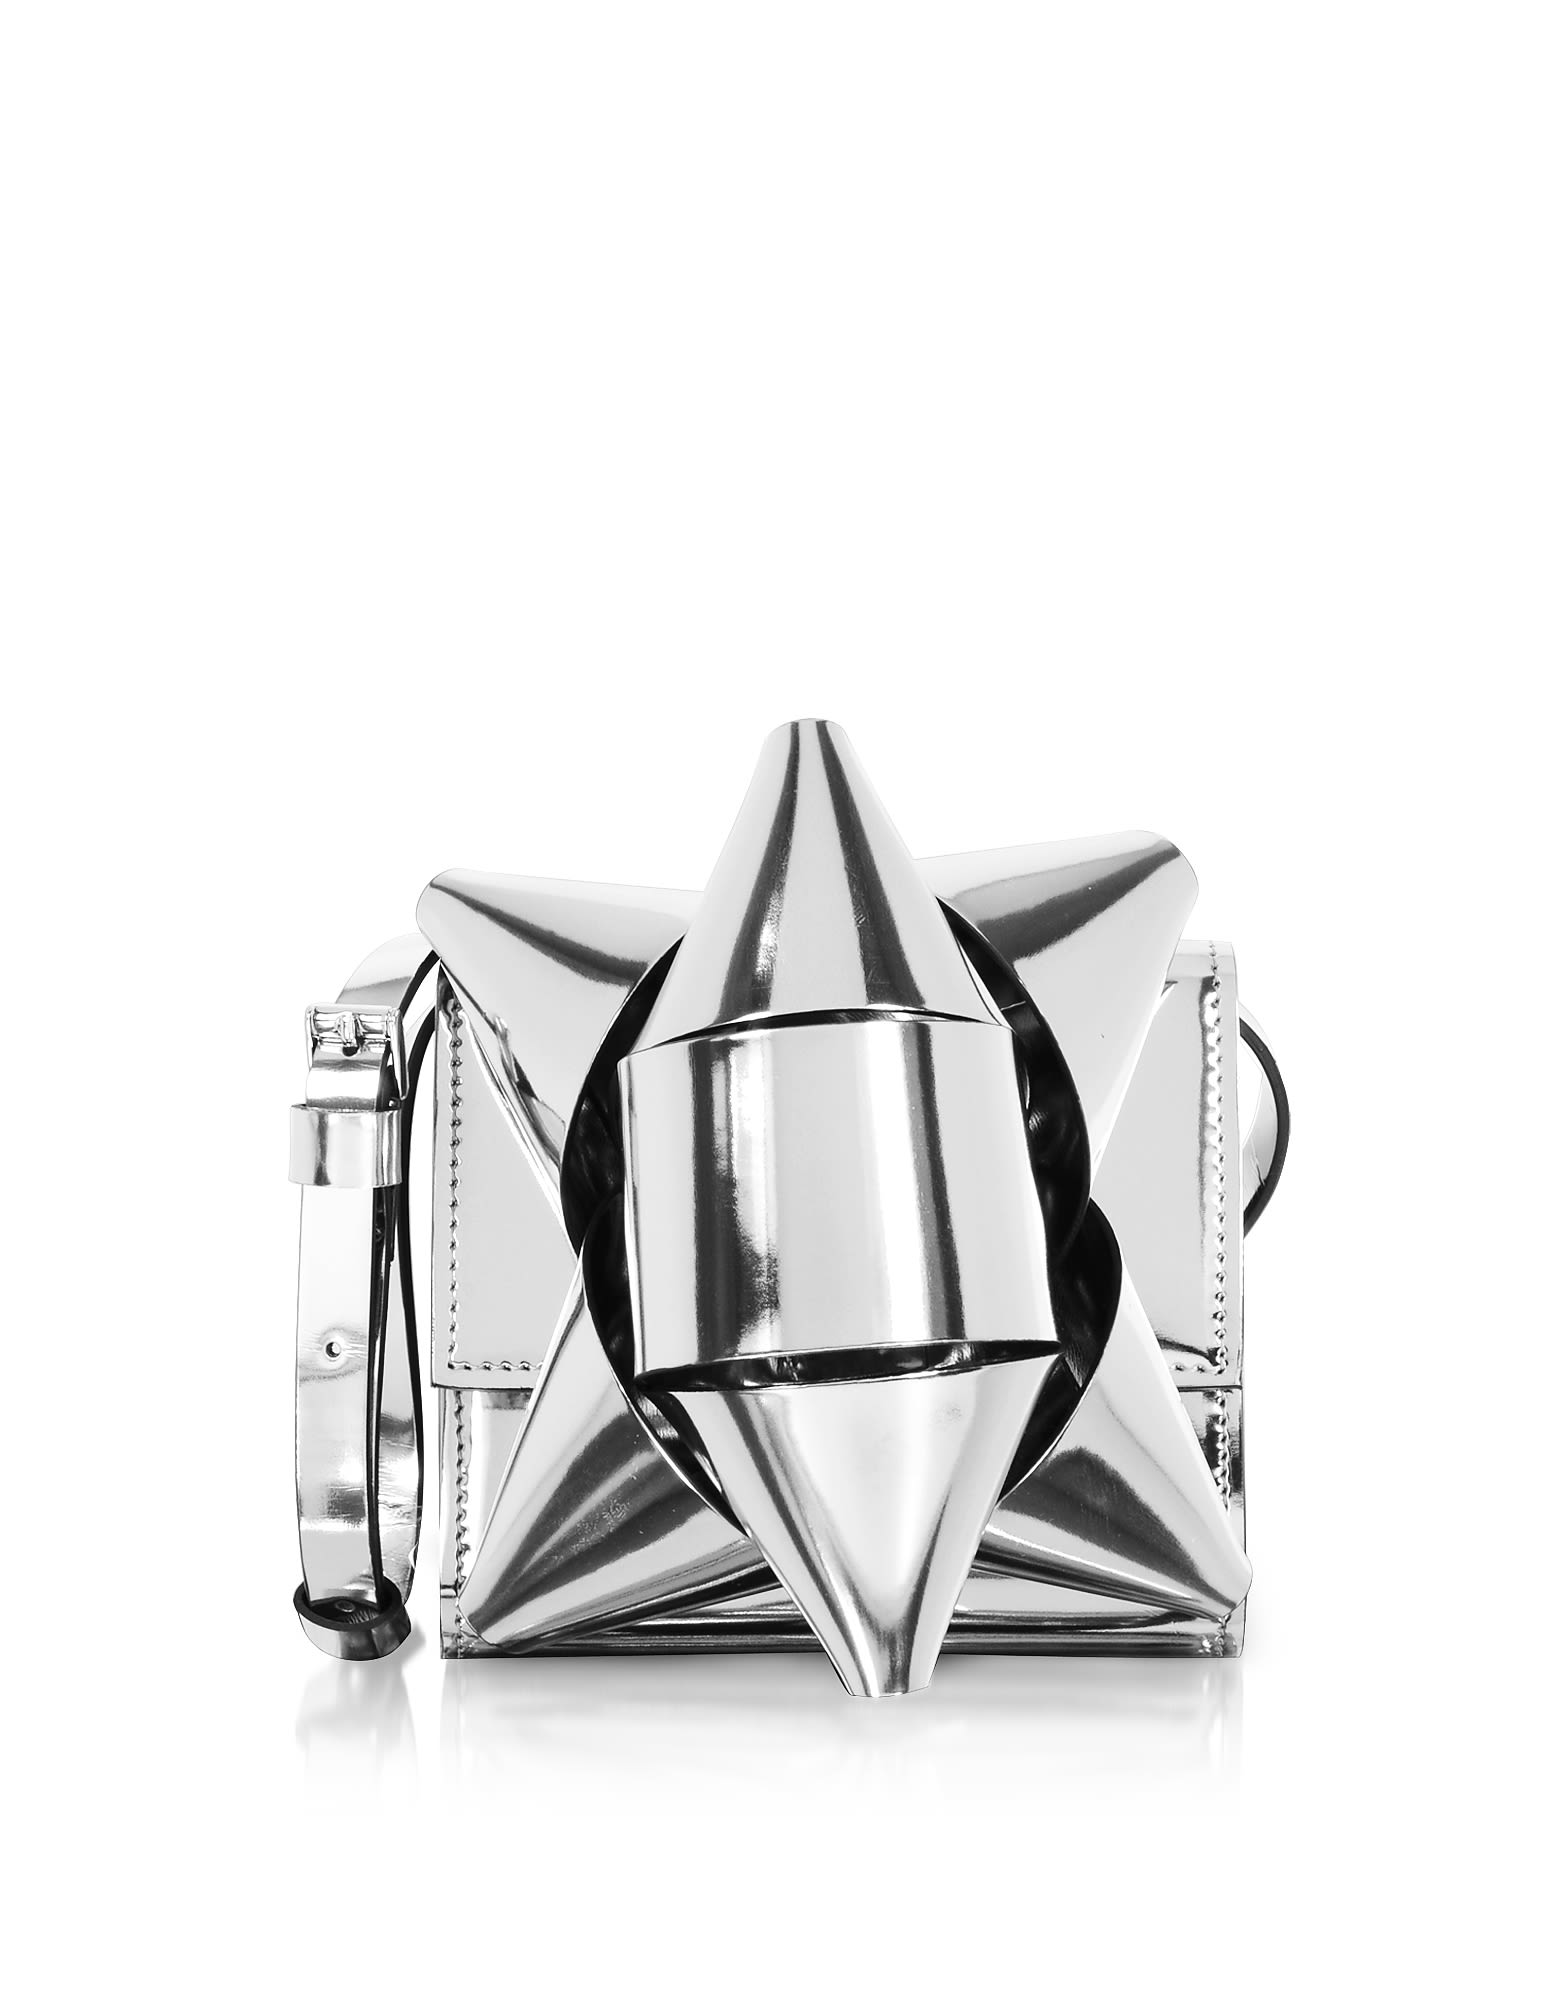 Mm6 Maison Martin Margiela Metallic Eco-Leather Bow Shoulder Bag in Silver